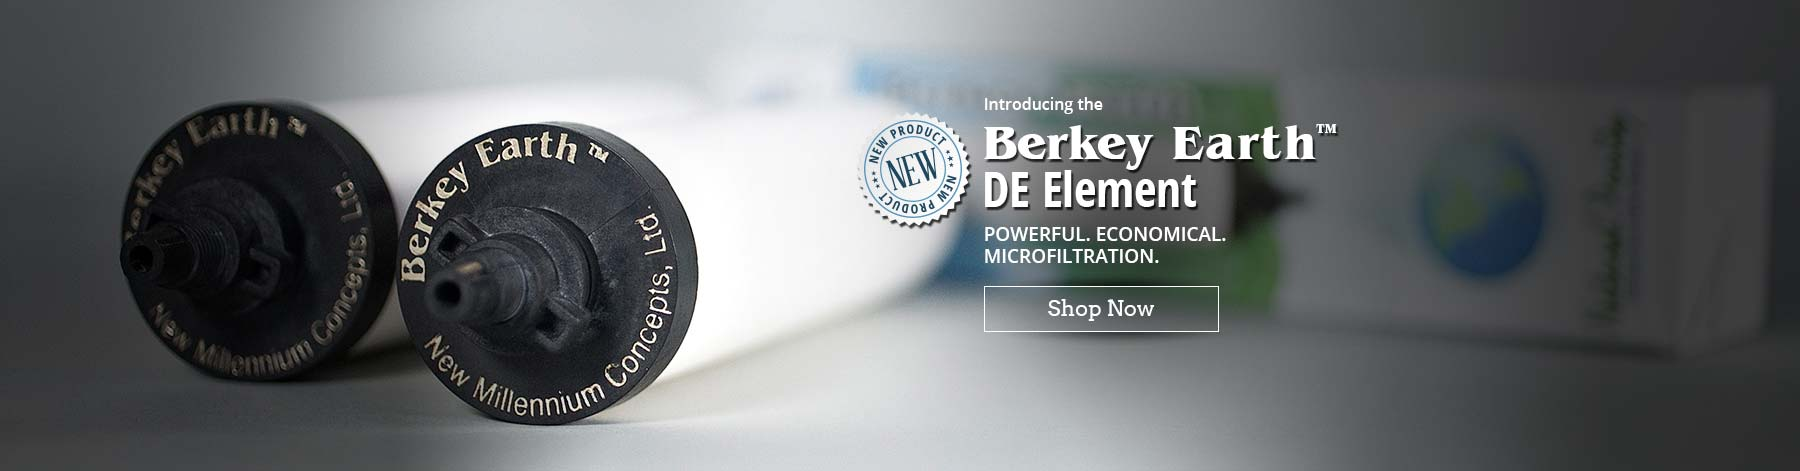 NEW! Berkey Earth DE Element - Powerful.Economical.Microfiltration